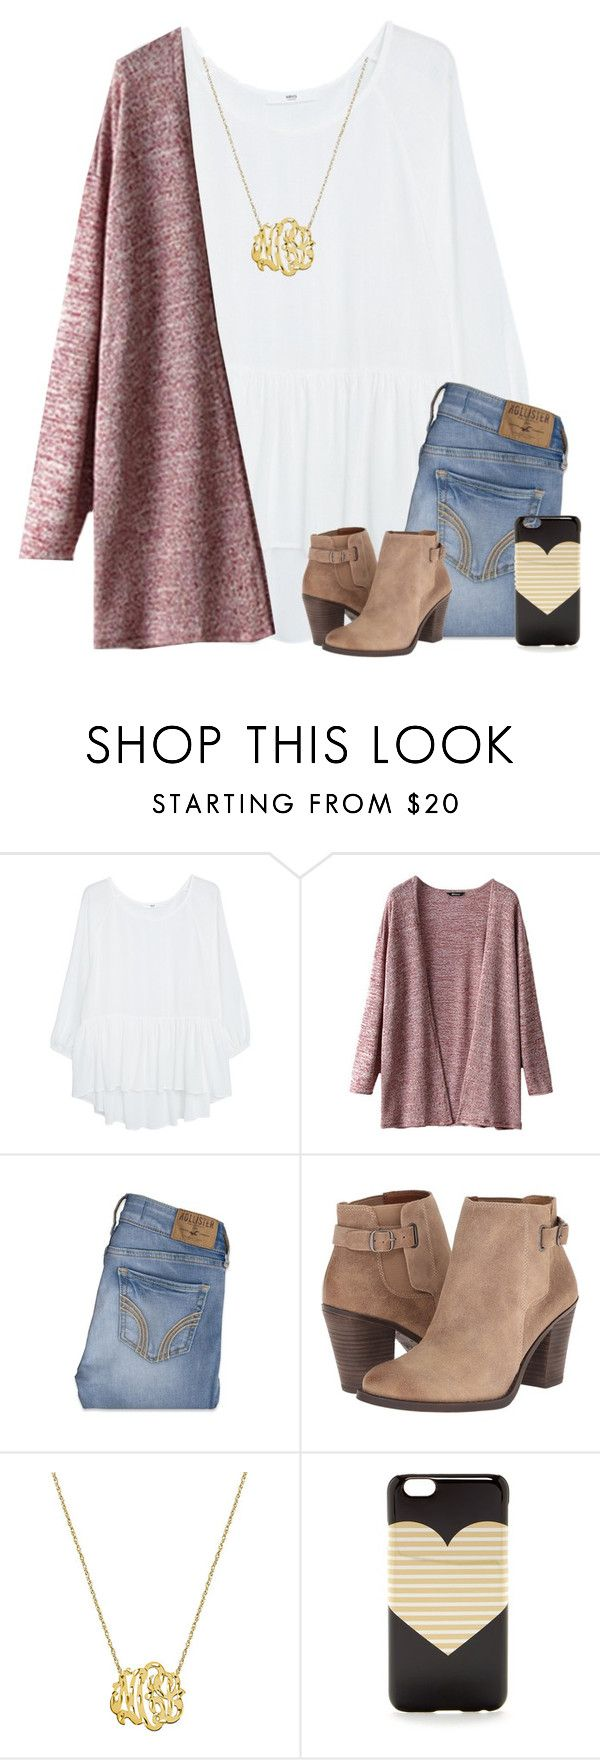 """""""Life is going pretty good rn:)"""" by savanahe ❤ liked on Polyvore featuring MANGO, Hollister Co., Lucky Brand and J.Crew"""